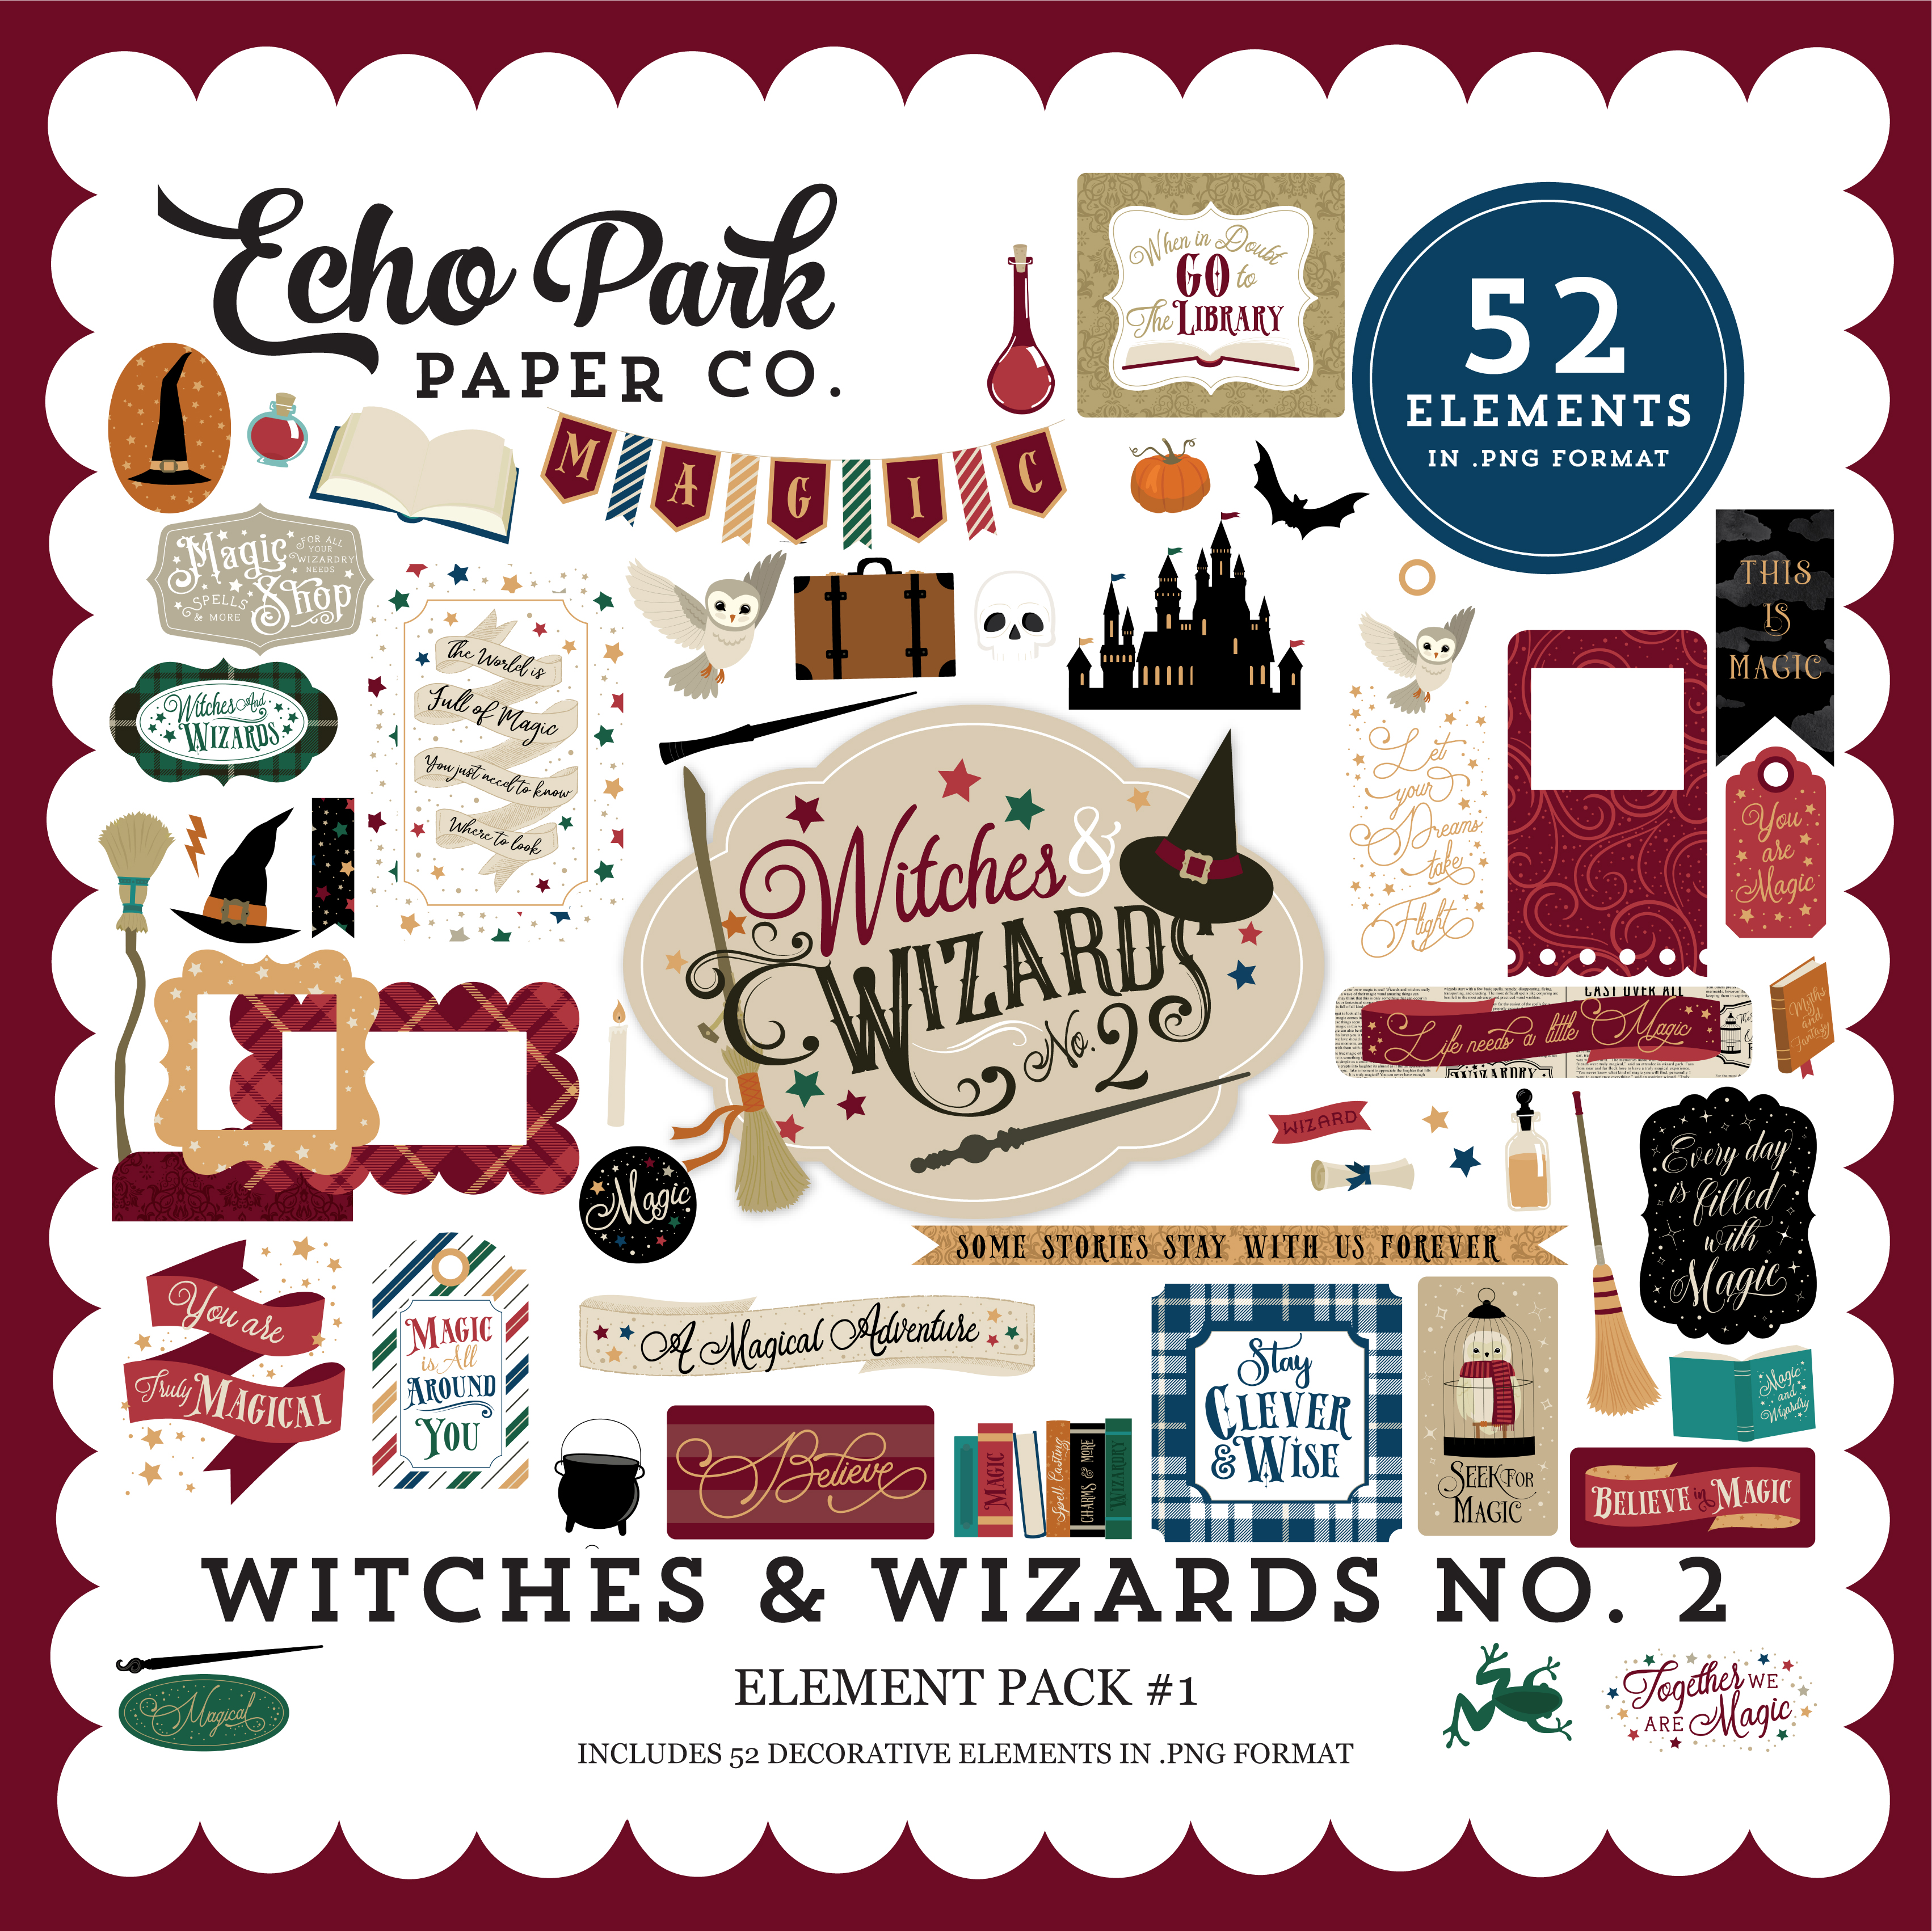 Witches & Wizards No. 2 Element Pack #1